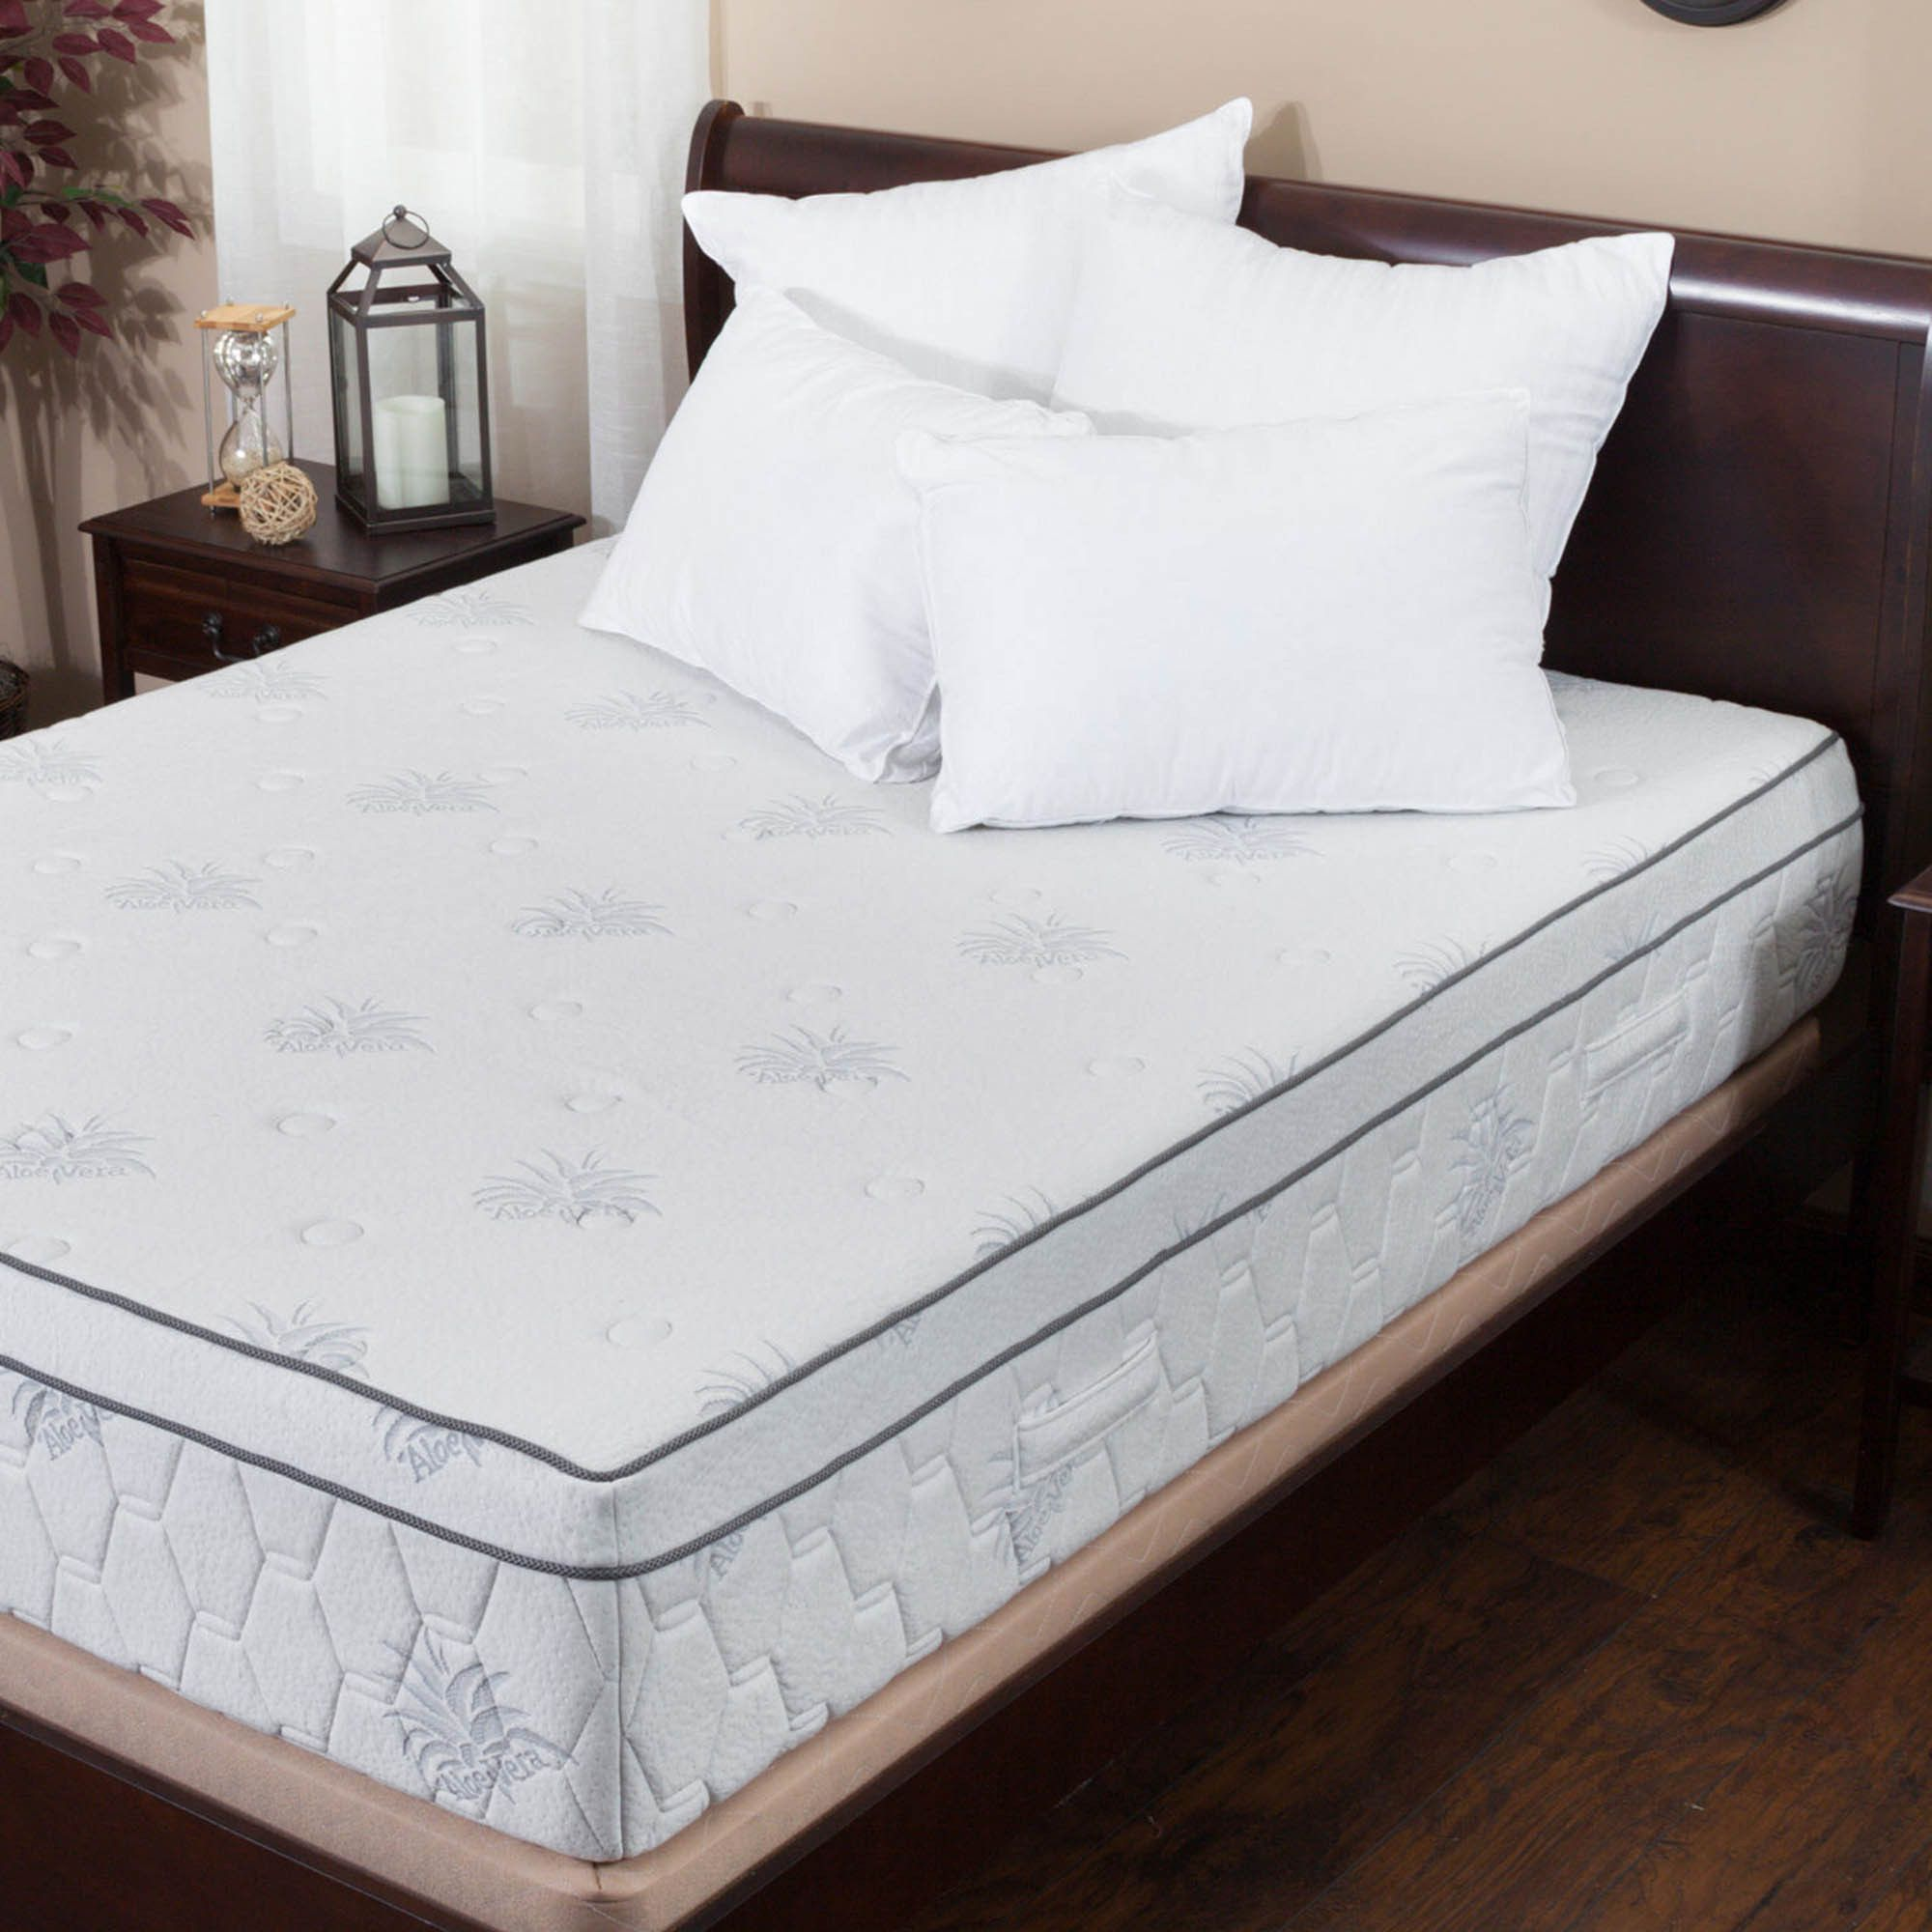 #ad Aloe Gel Memory Foam 13 Inch King Size Pillow Top Mattress Built with  the